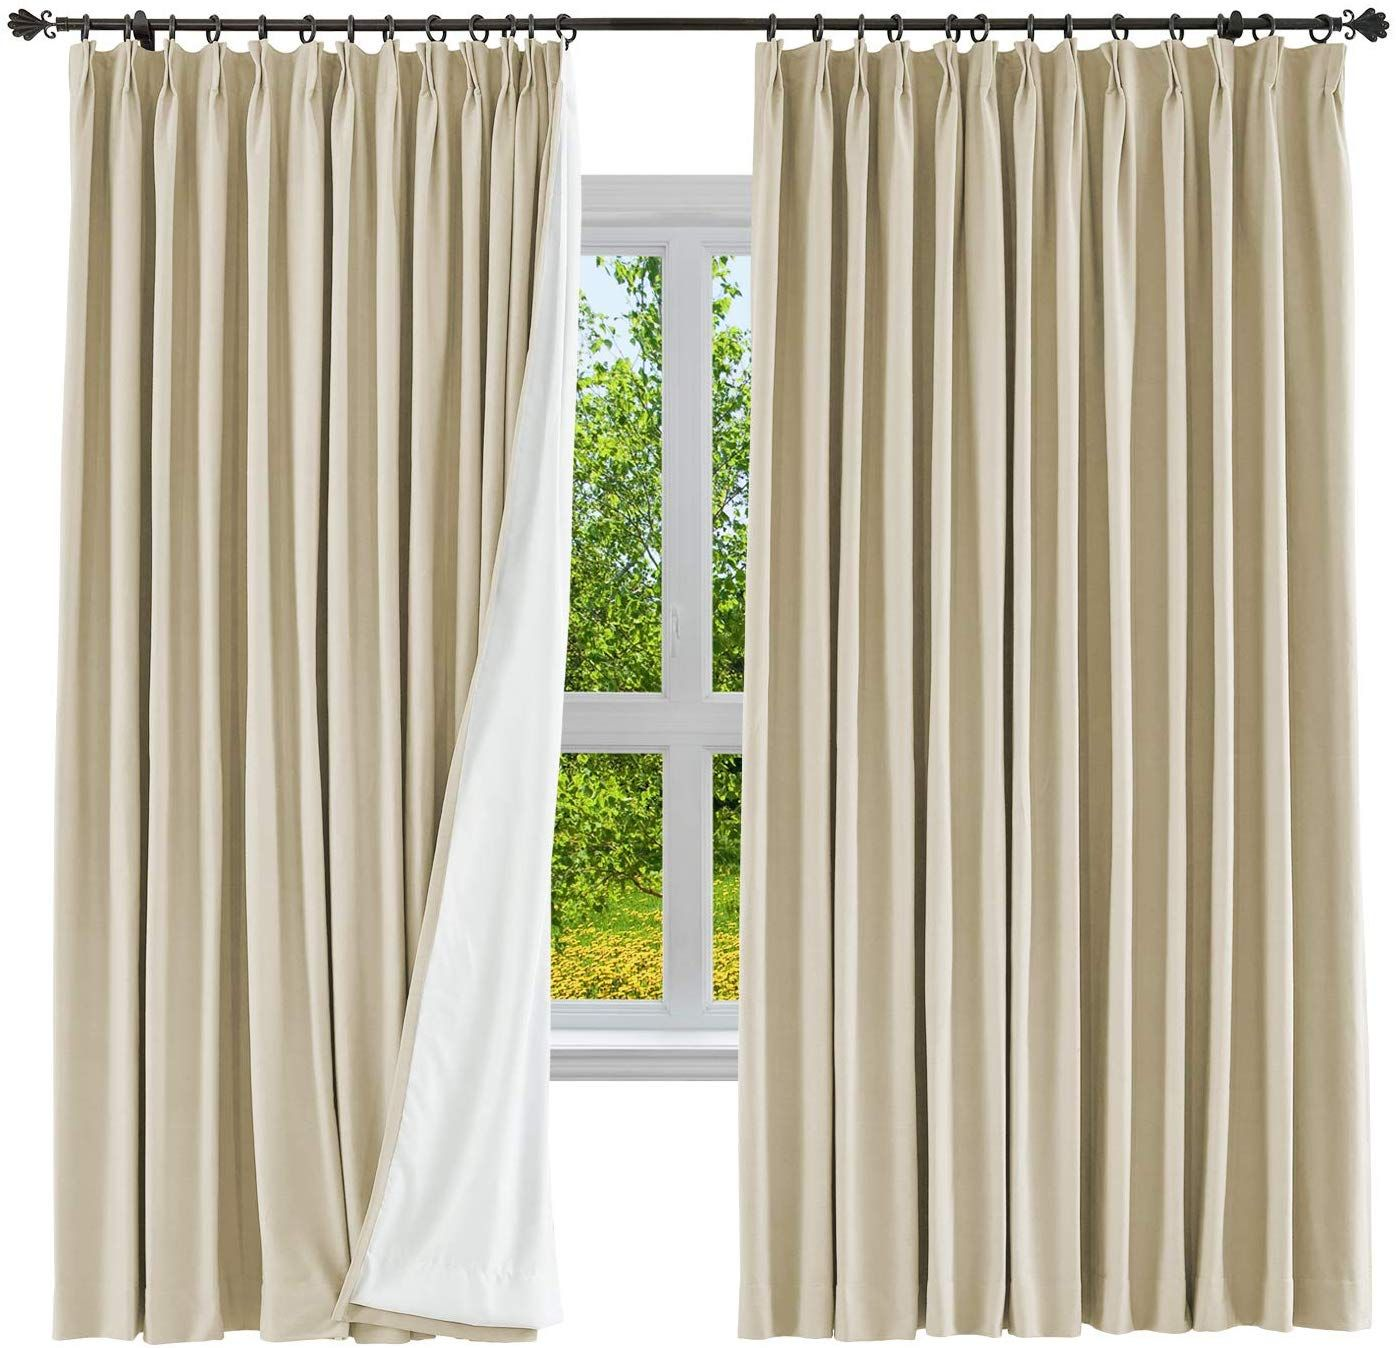 Amazon Com Cololeaf Blackout Curtain Panel Cotton Linen Drape